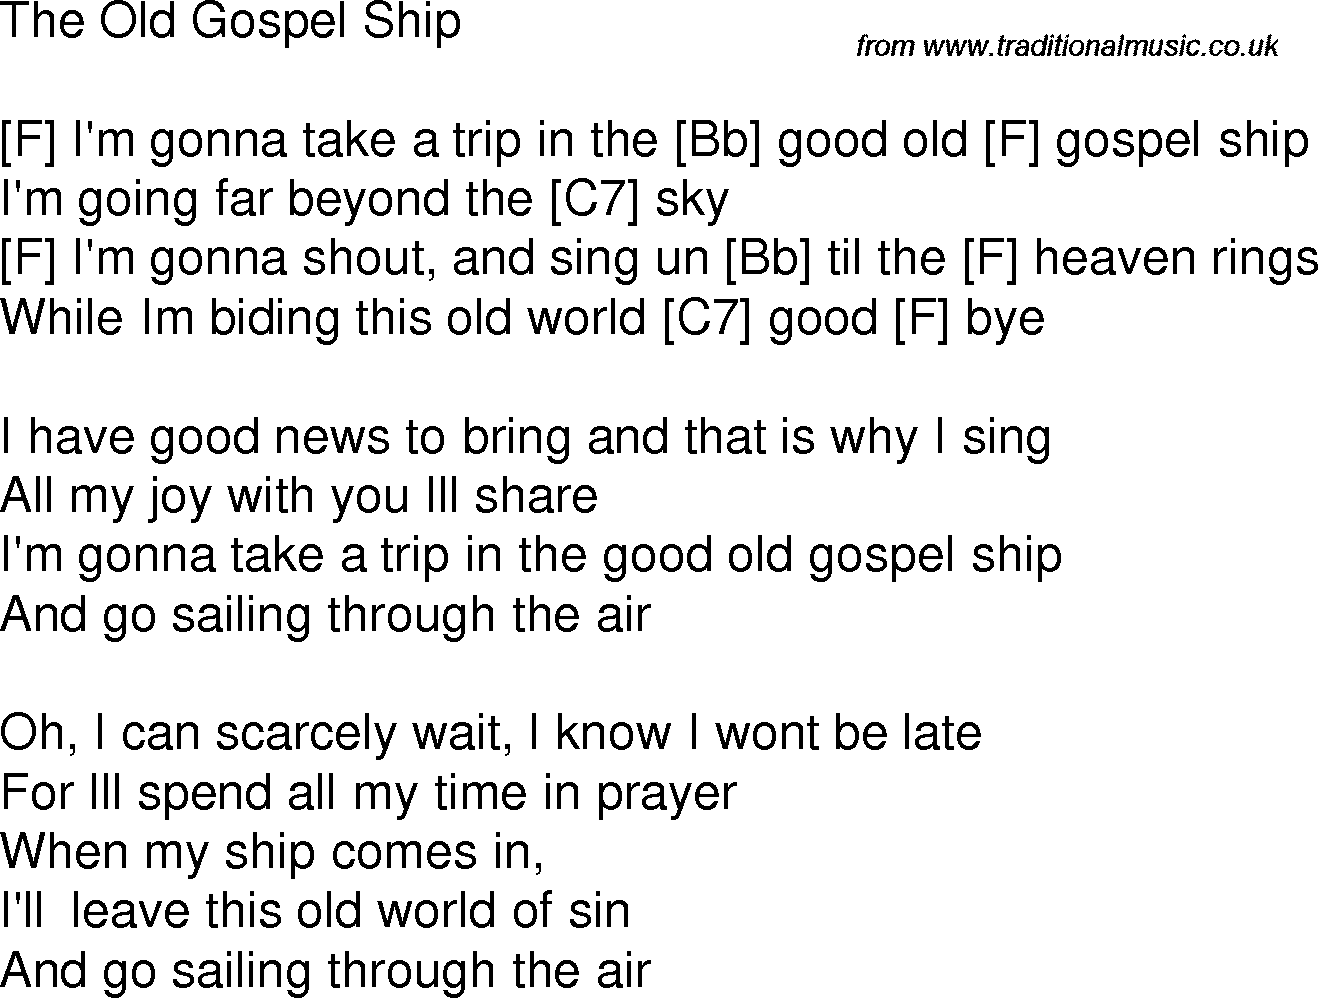 gospel song lyrics? | Yahoo Answers